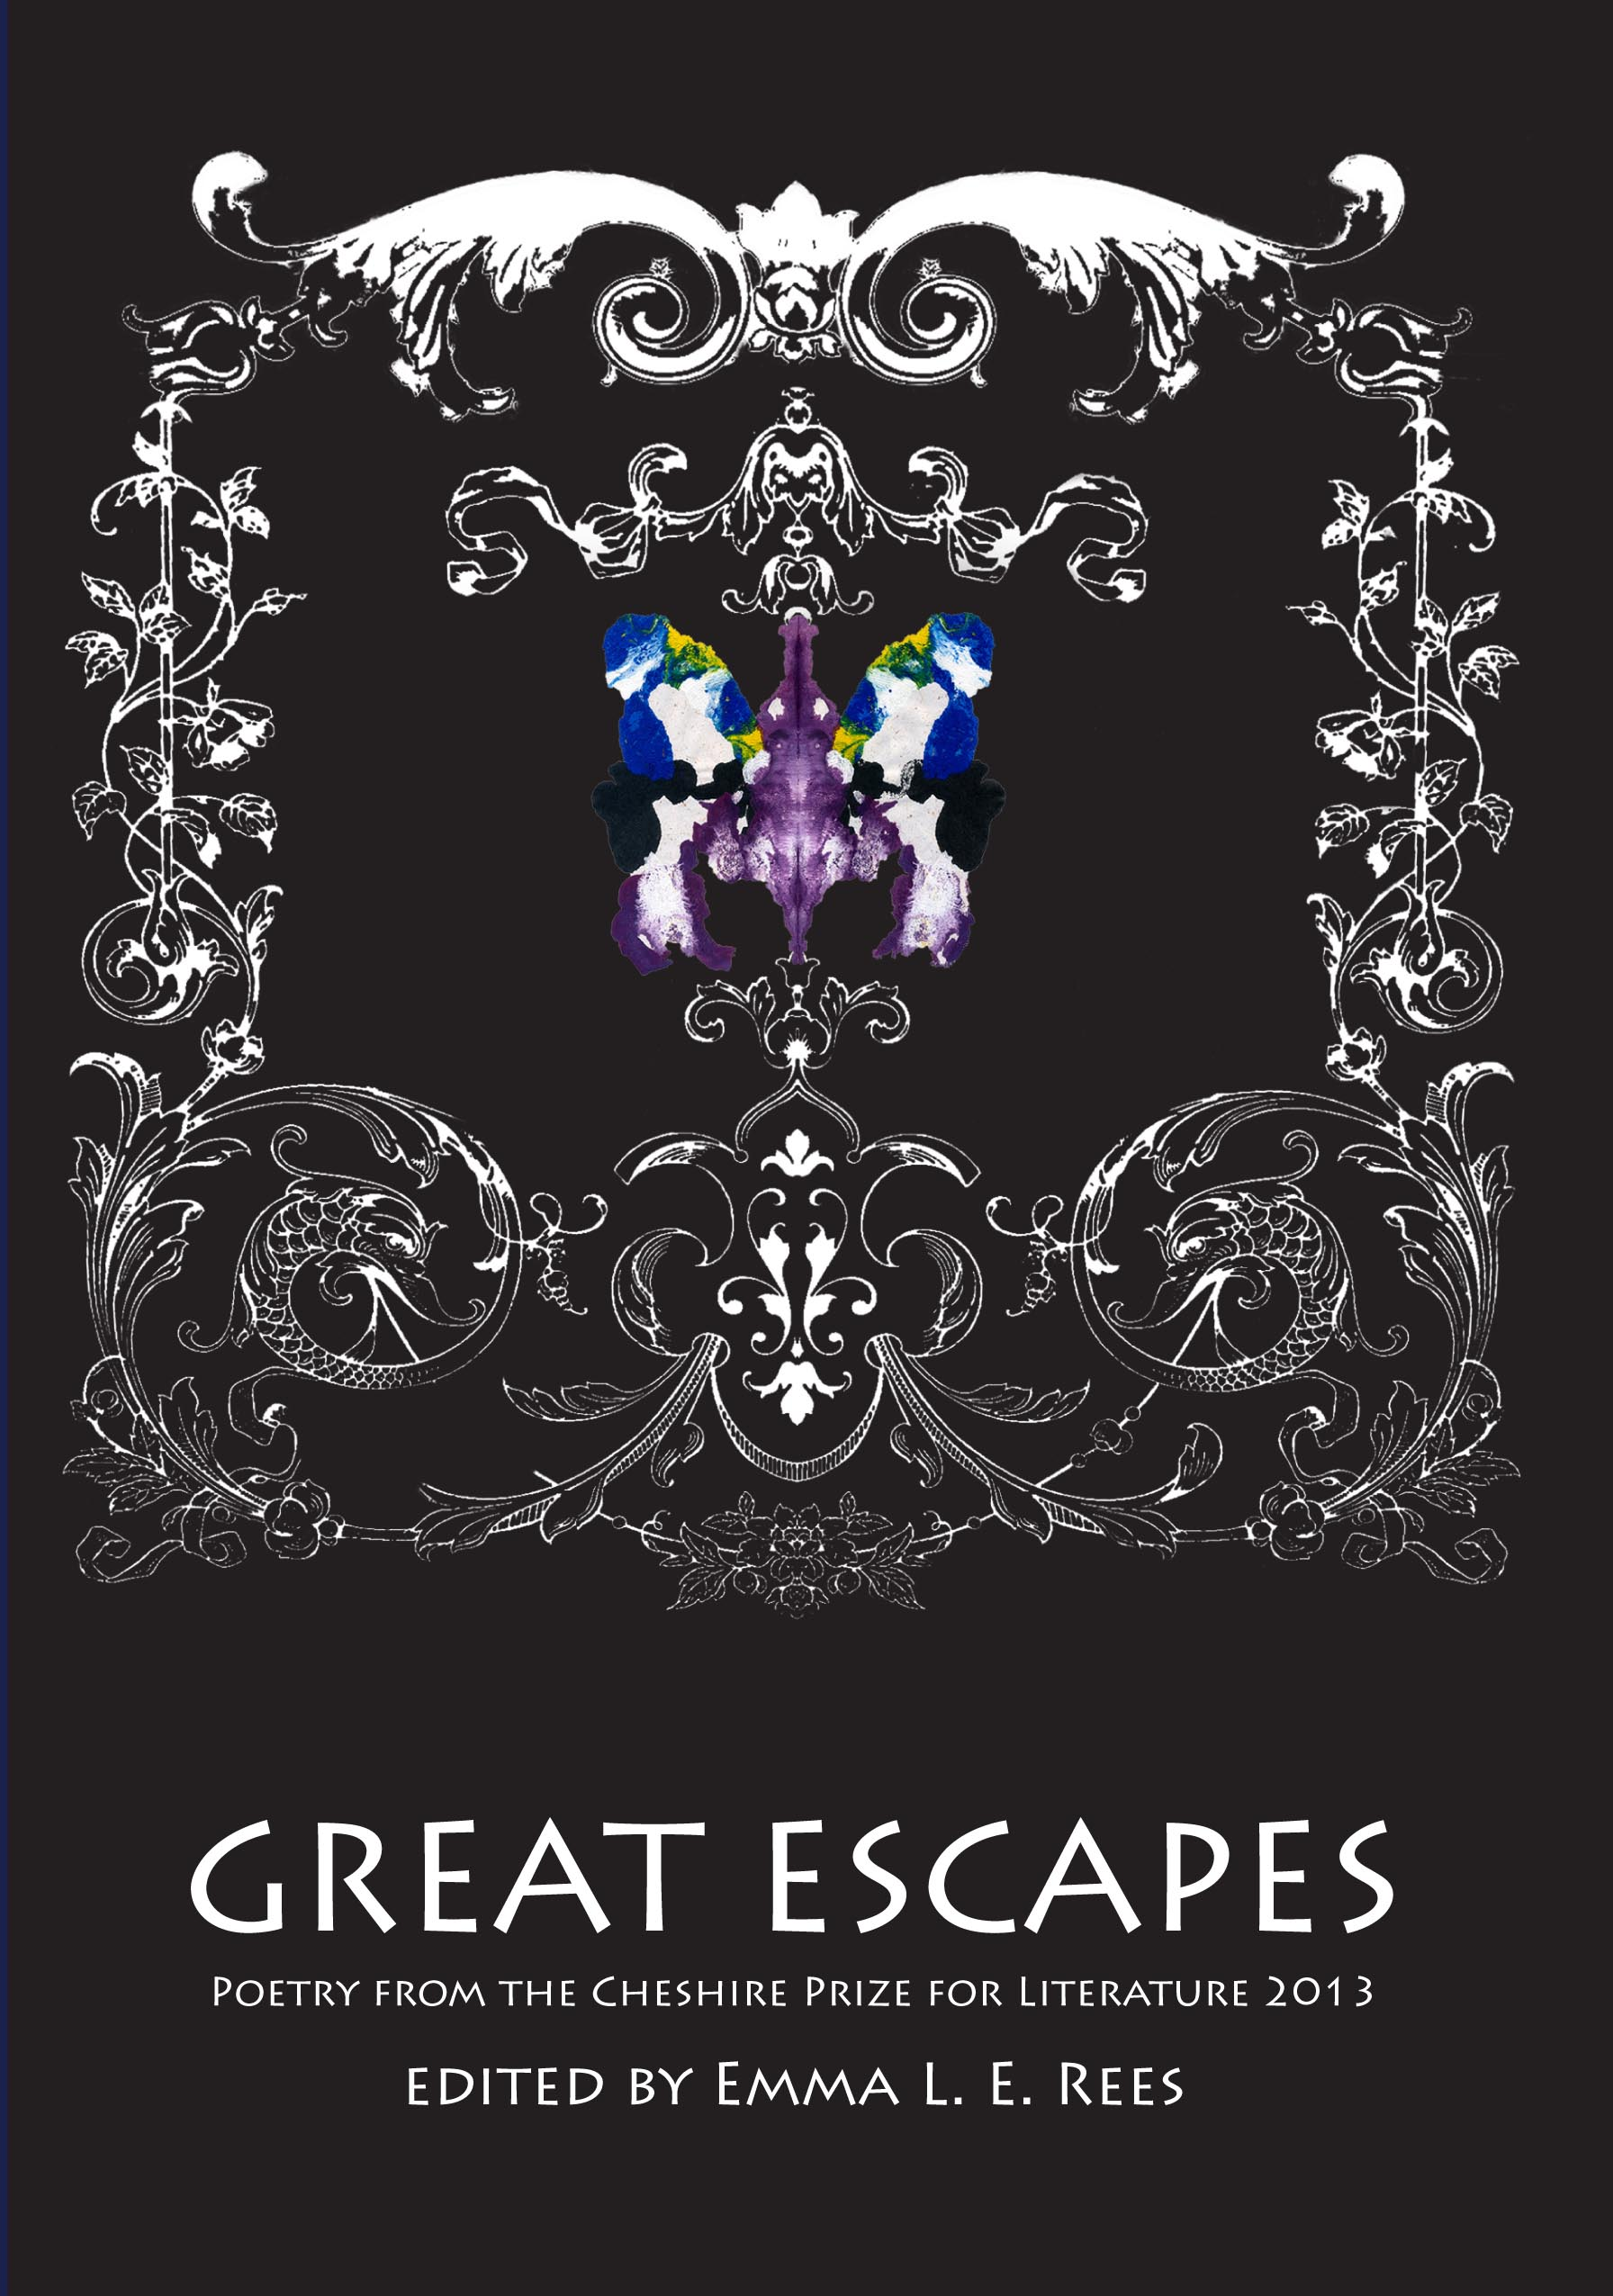 Great Escapes: Poems From the Cheshire Prize for Literature 2013